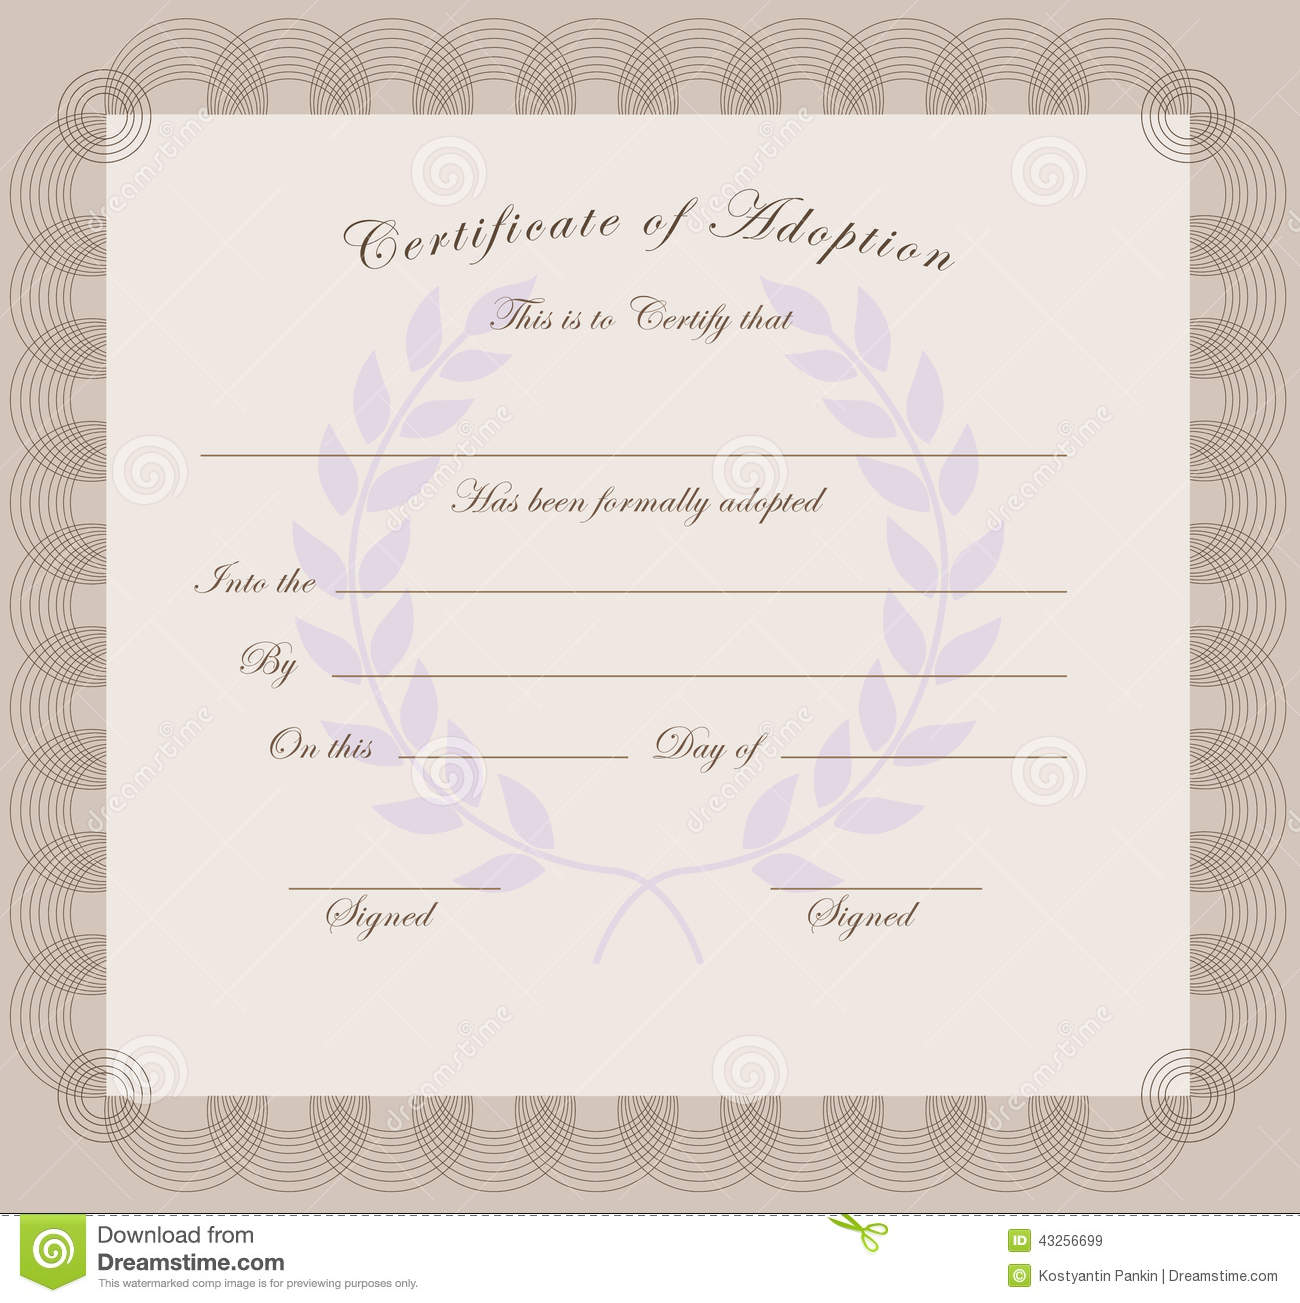 Certificate Of Adoption Stock Vector - Image: 43256699